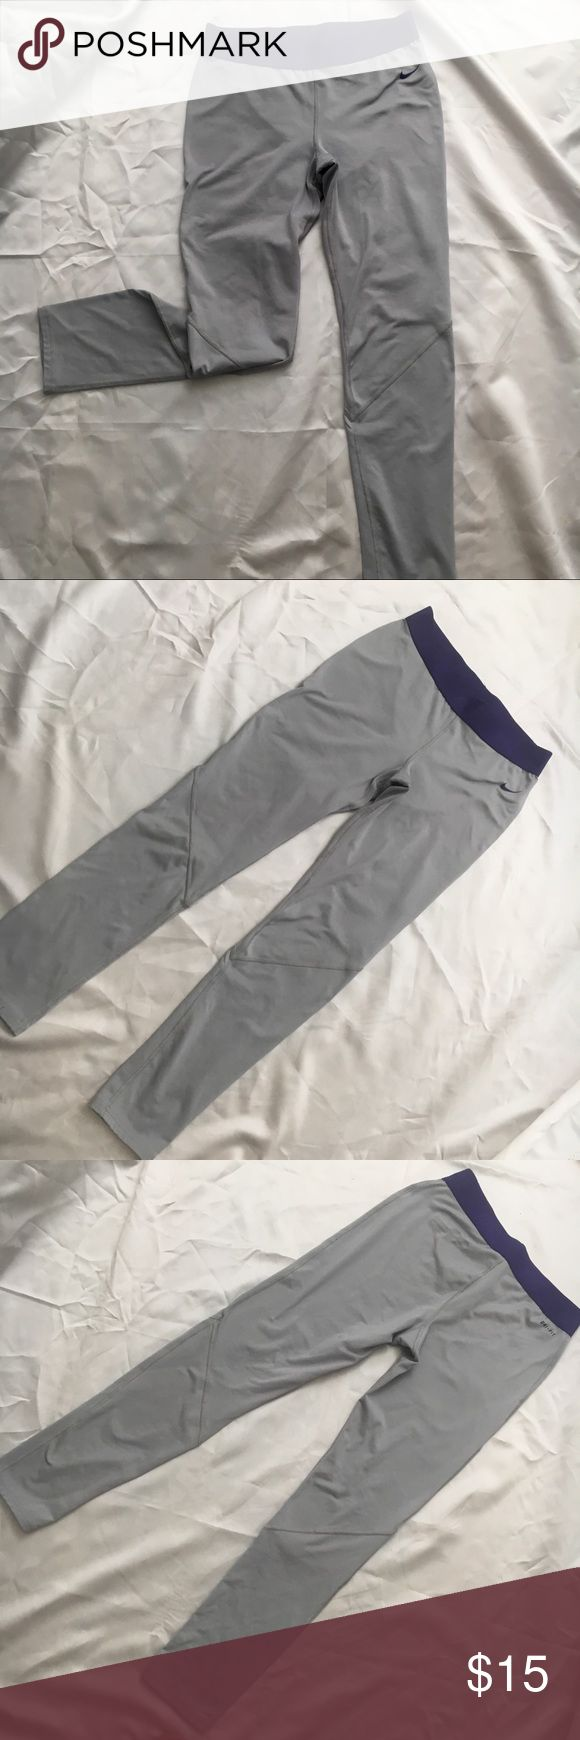 "Nike Dri-Fit Grey Active Pant Nice light grey/purple color combo. Polyester/spandex knit fabric fleece brush inner for colder weather.  This is a children's pant size XL but will fit a ladies size small or medium 5'4"" or shorter   Waist 26.5"" relaxed circ.  Inseam 26.5"" Leg opening 4.5"" Flat Nike Bottoms Leggings"